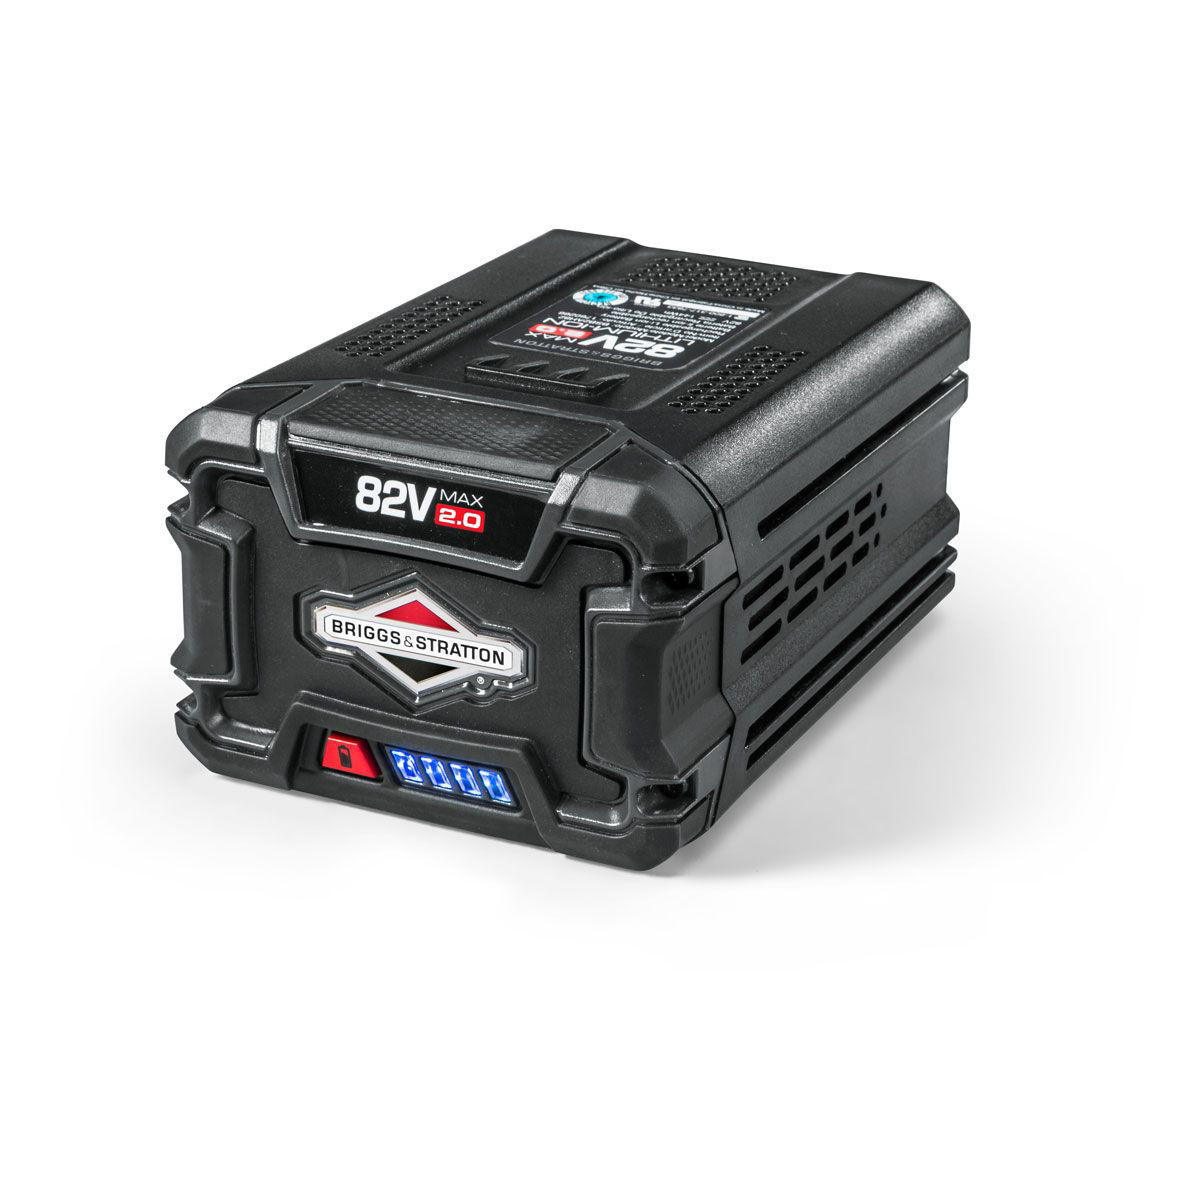 Picture of BRIGGS & STRATTON 2 AH 82V BATTERY